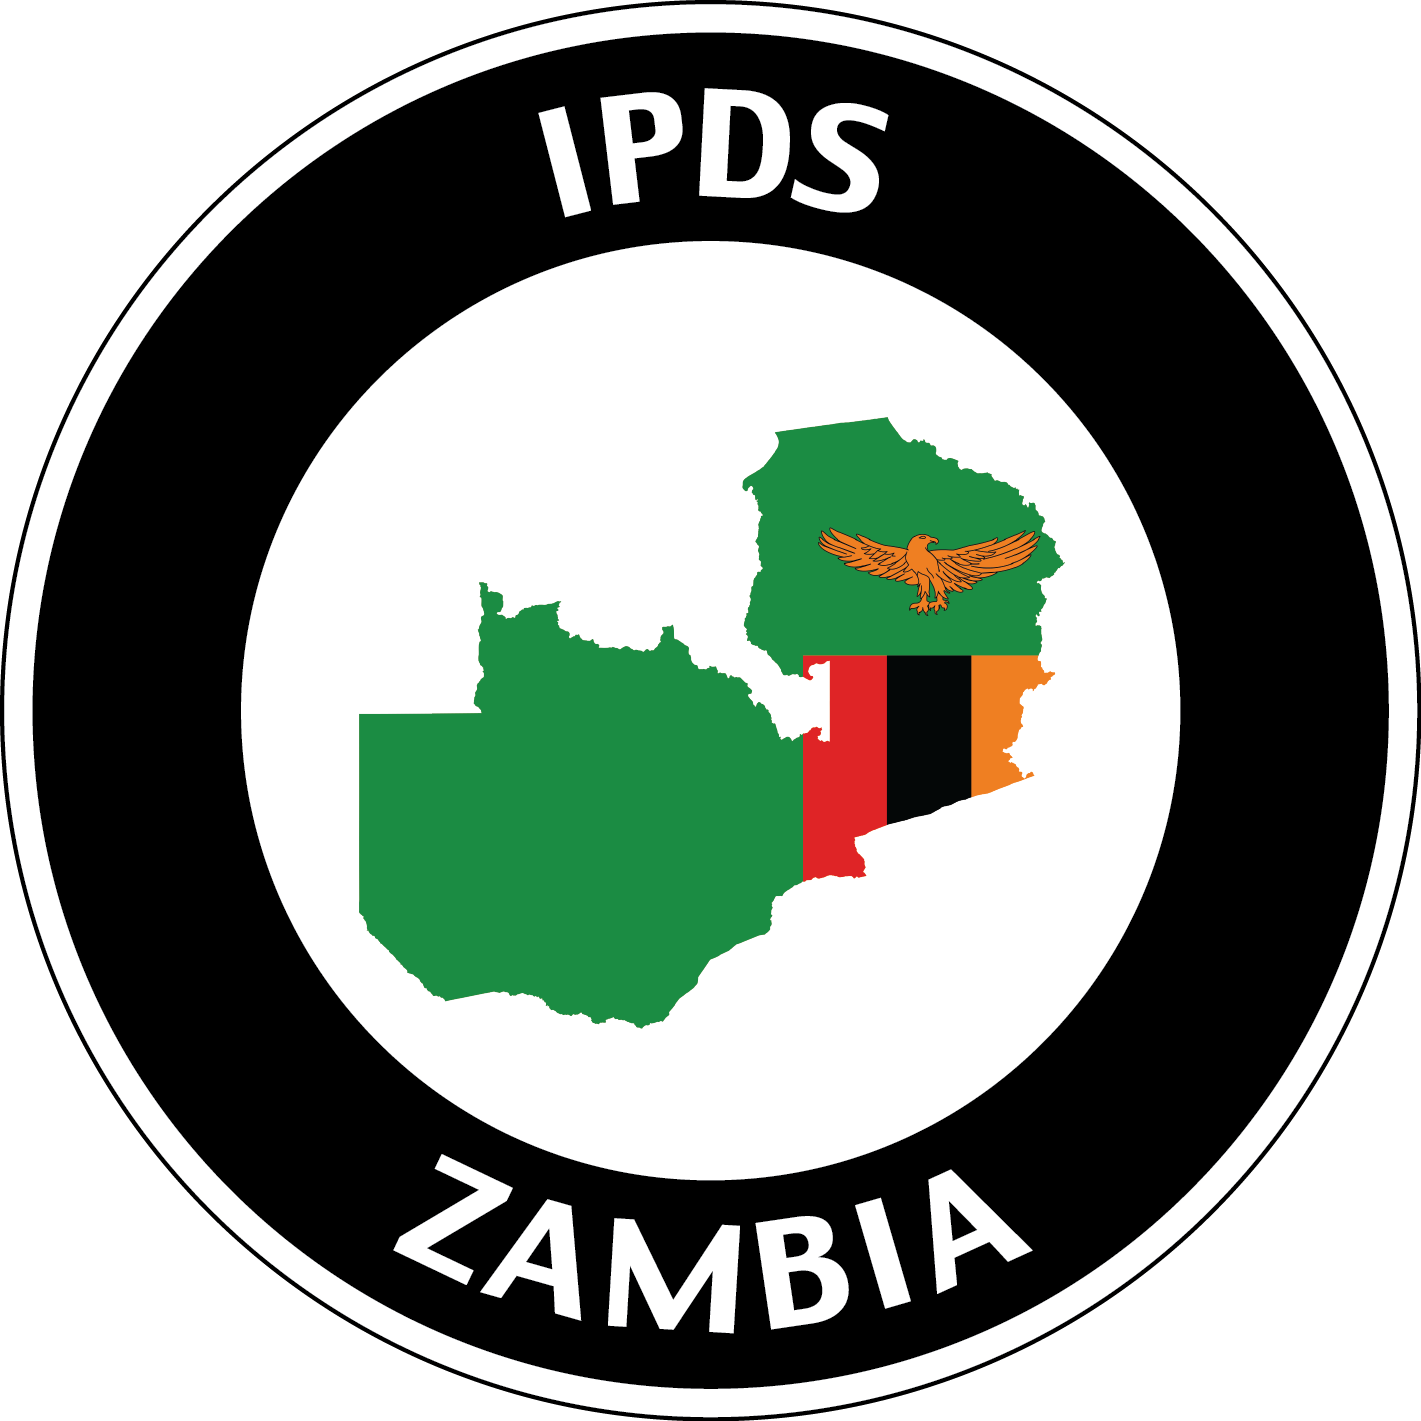 IPDS Zambia icon with country and flag